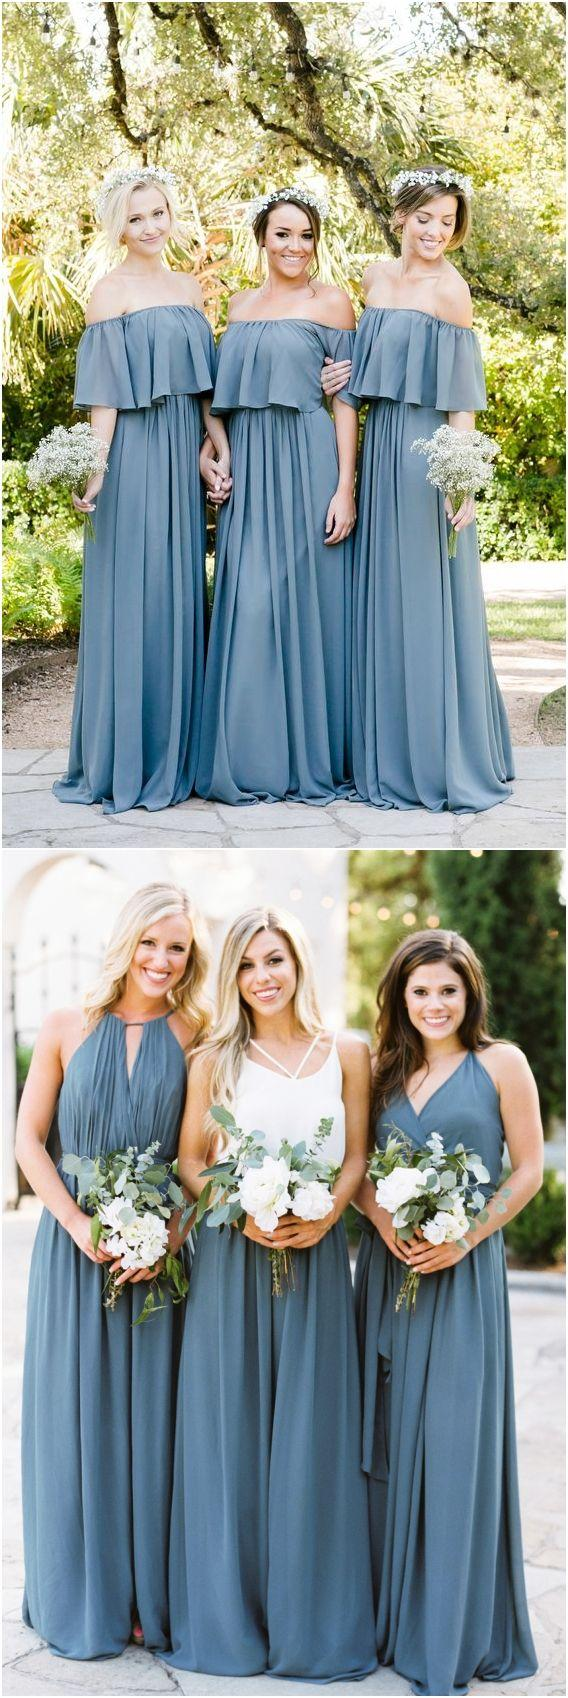 Mariage - Top 6 Bridesmaid Dress Trends For 2018